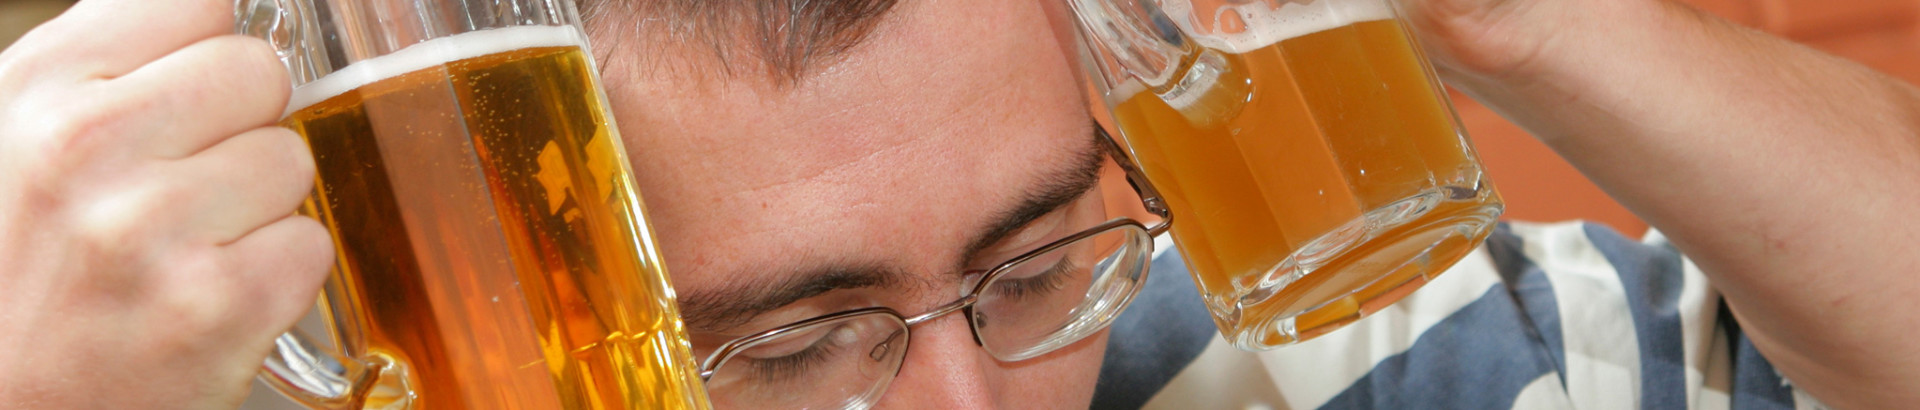 guy-with-hangover-cooling-his-head-with-two-beers-IST